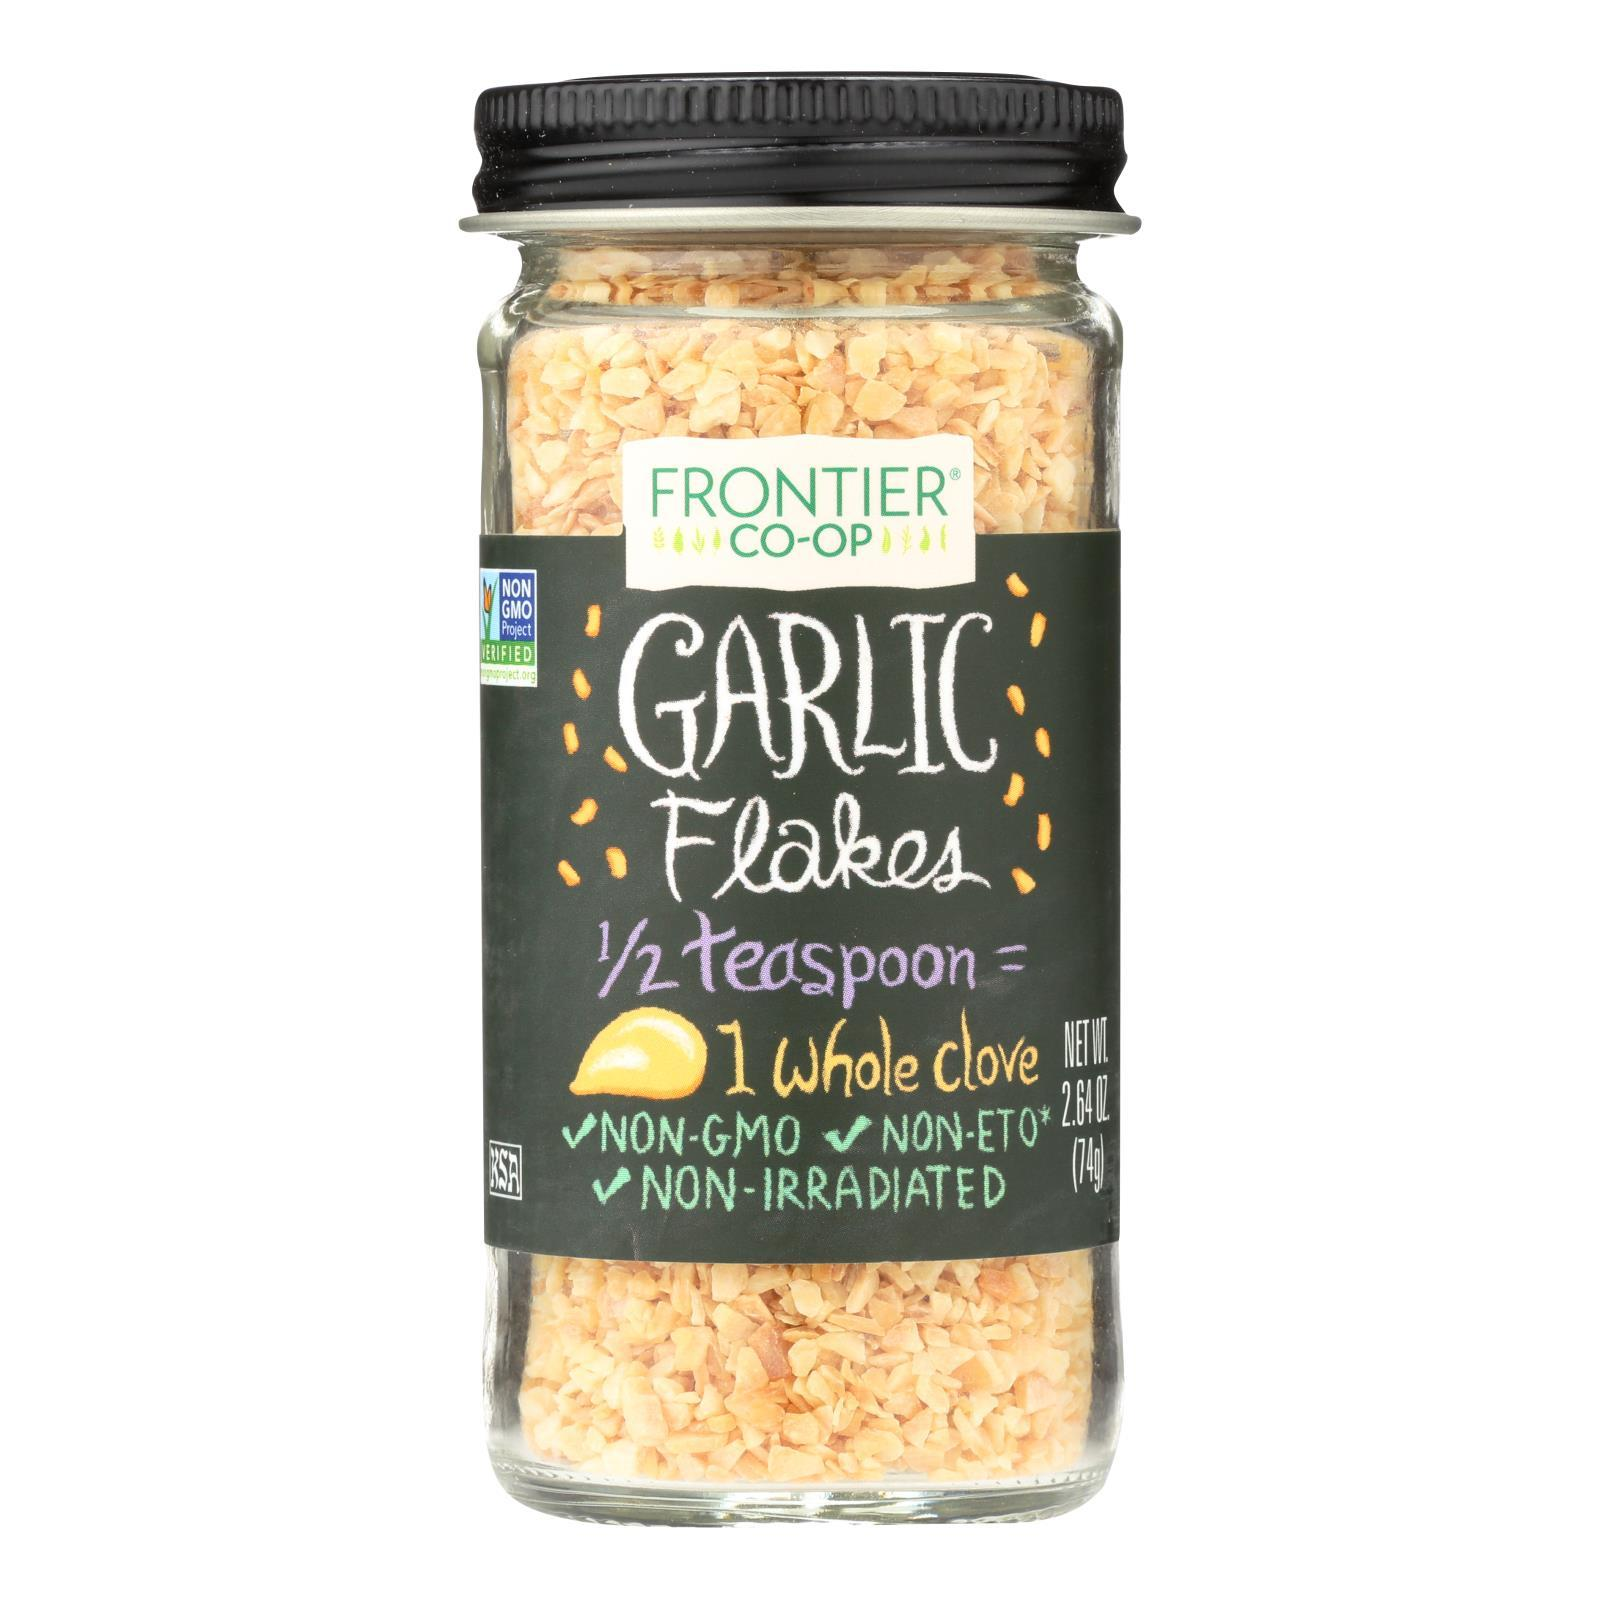 Frontier Herb Garlic - Flakes - 2.64 Oz - BeeGreen